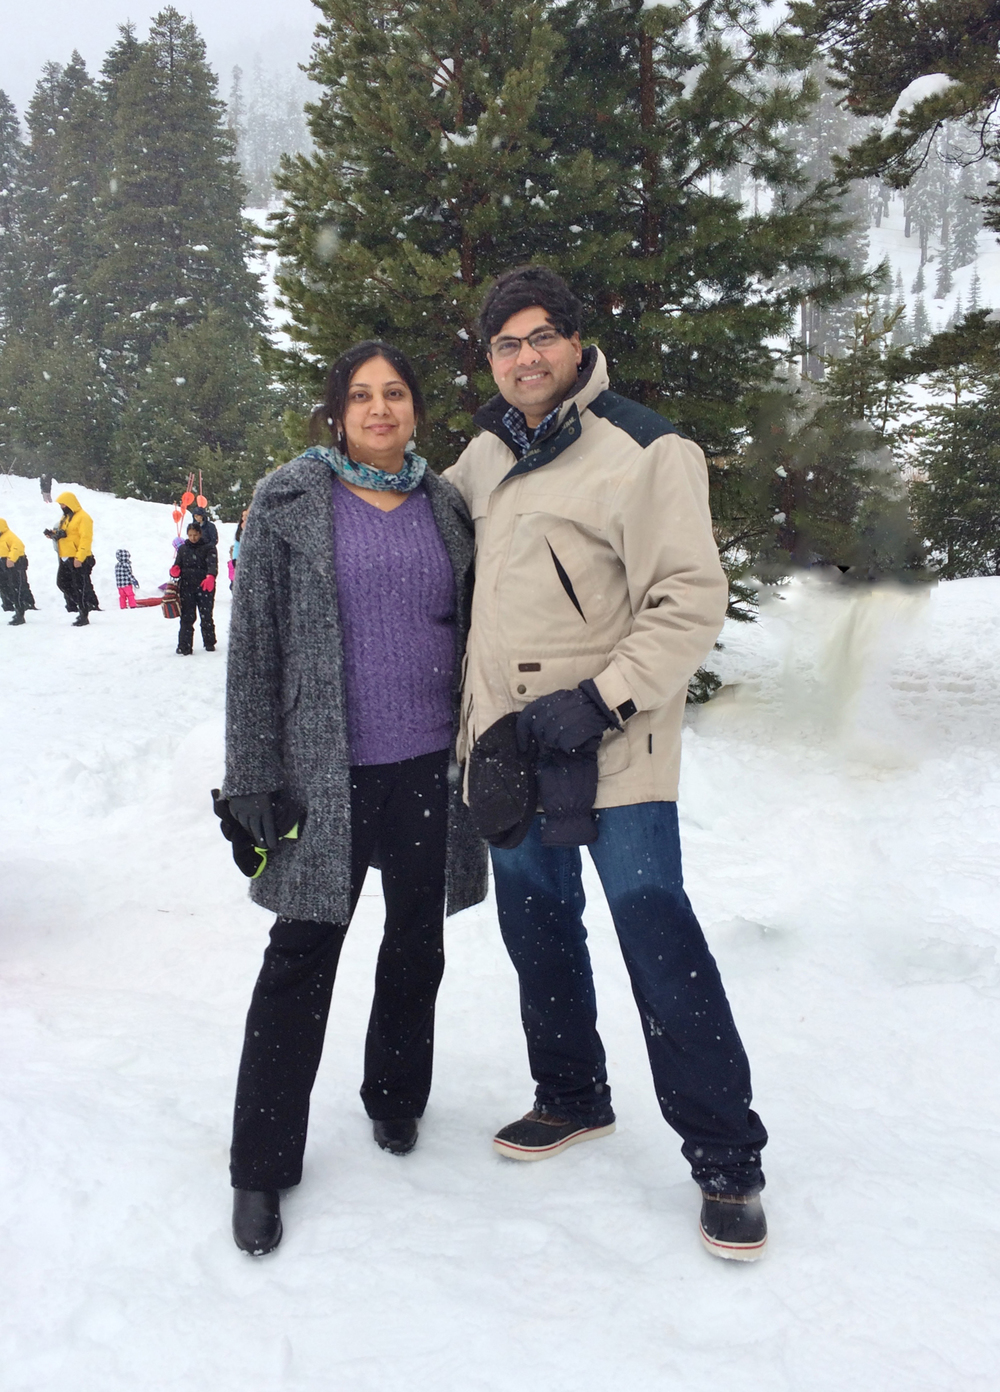 Lake Tahoe Vacation Dec 2015 035-1.jpg